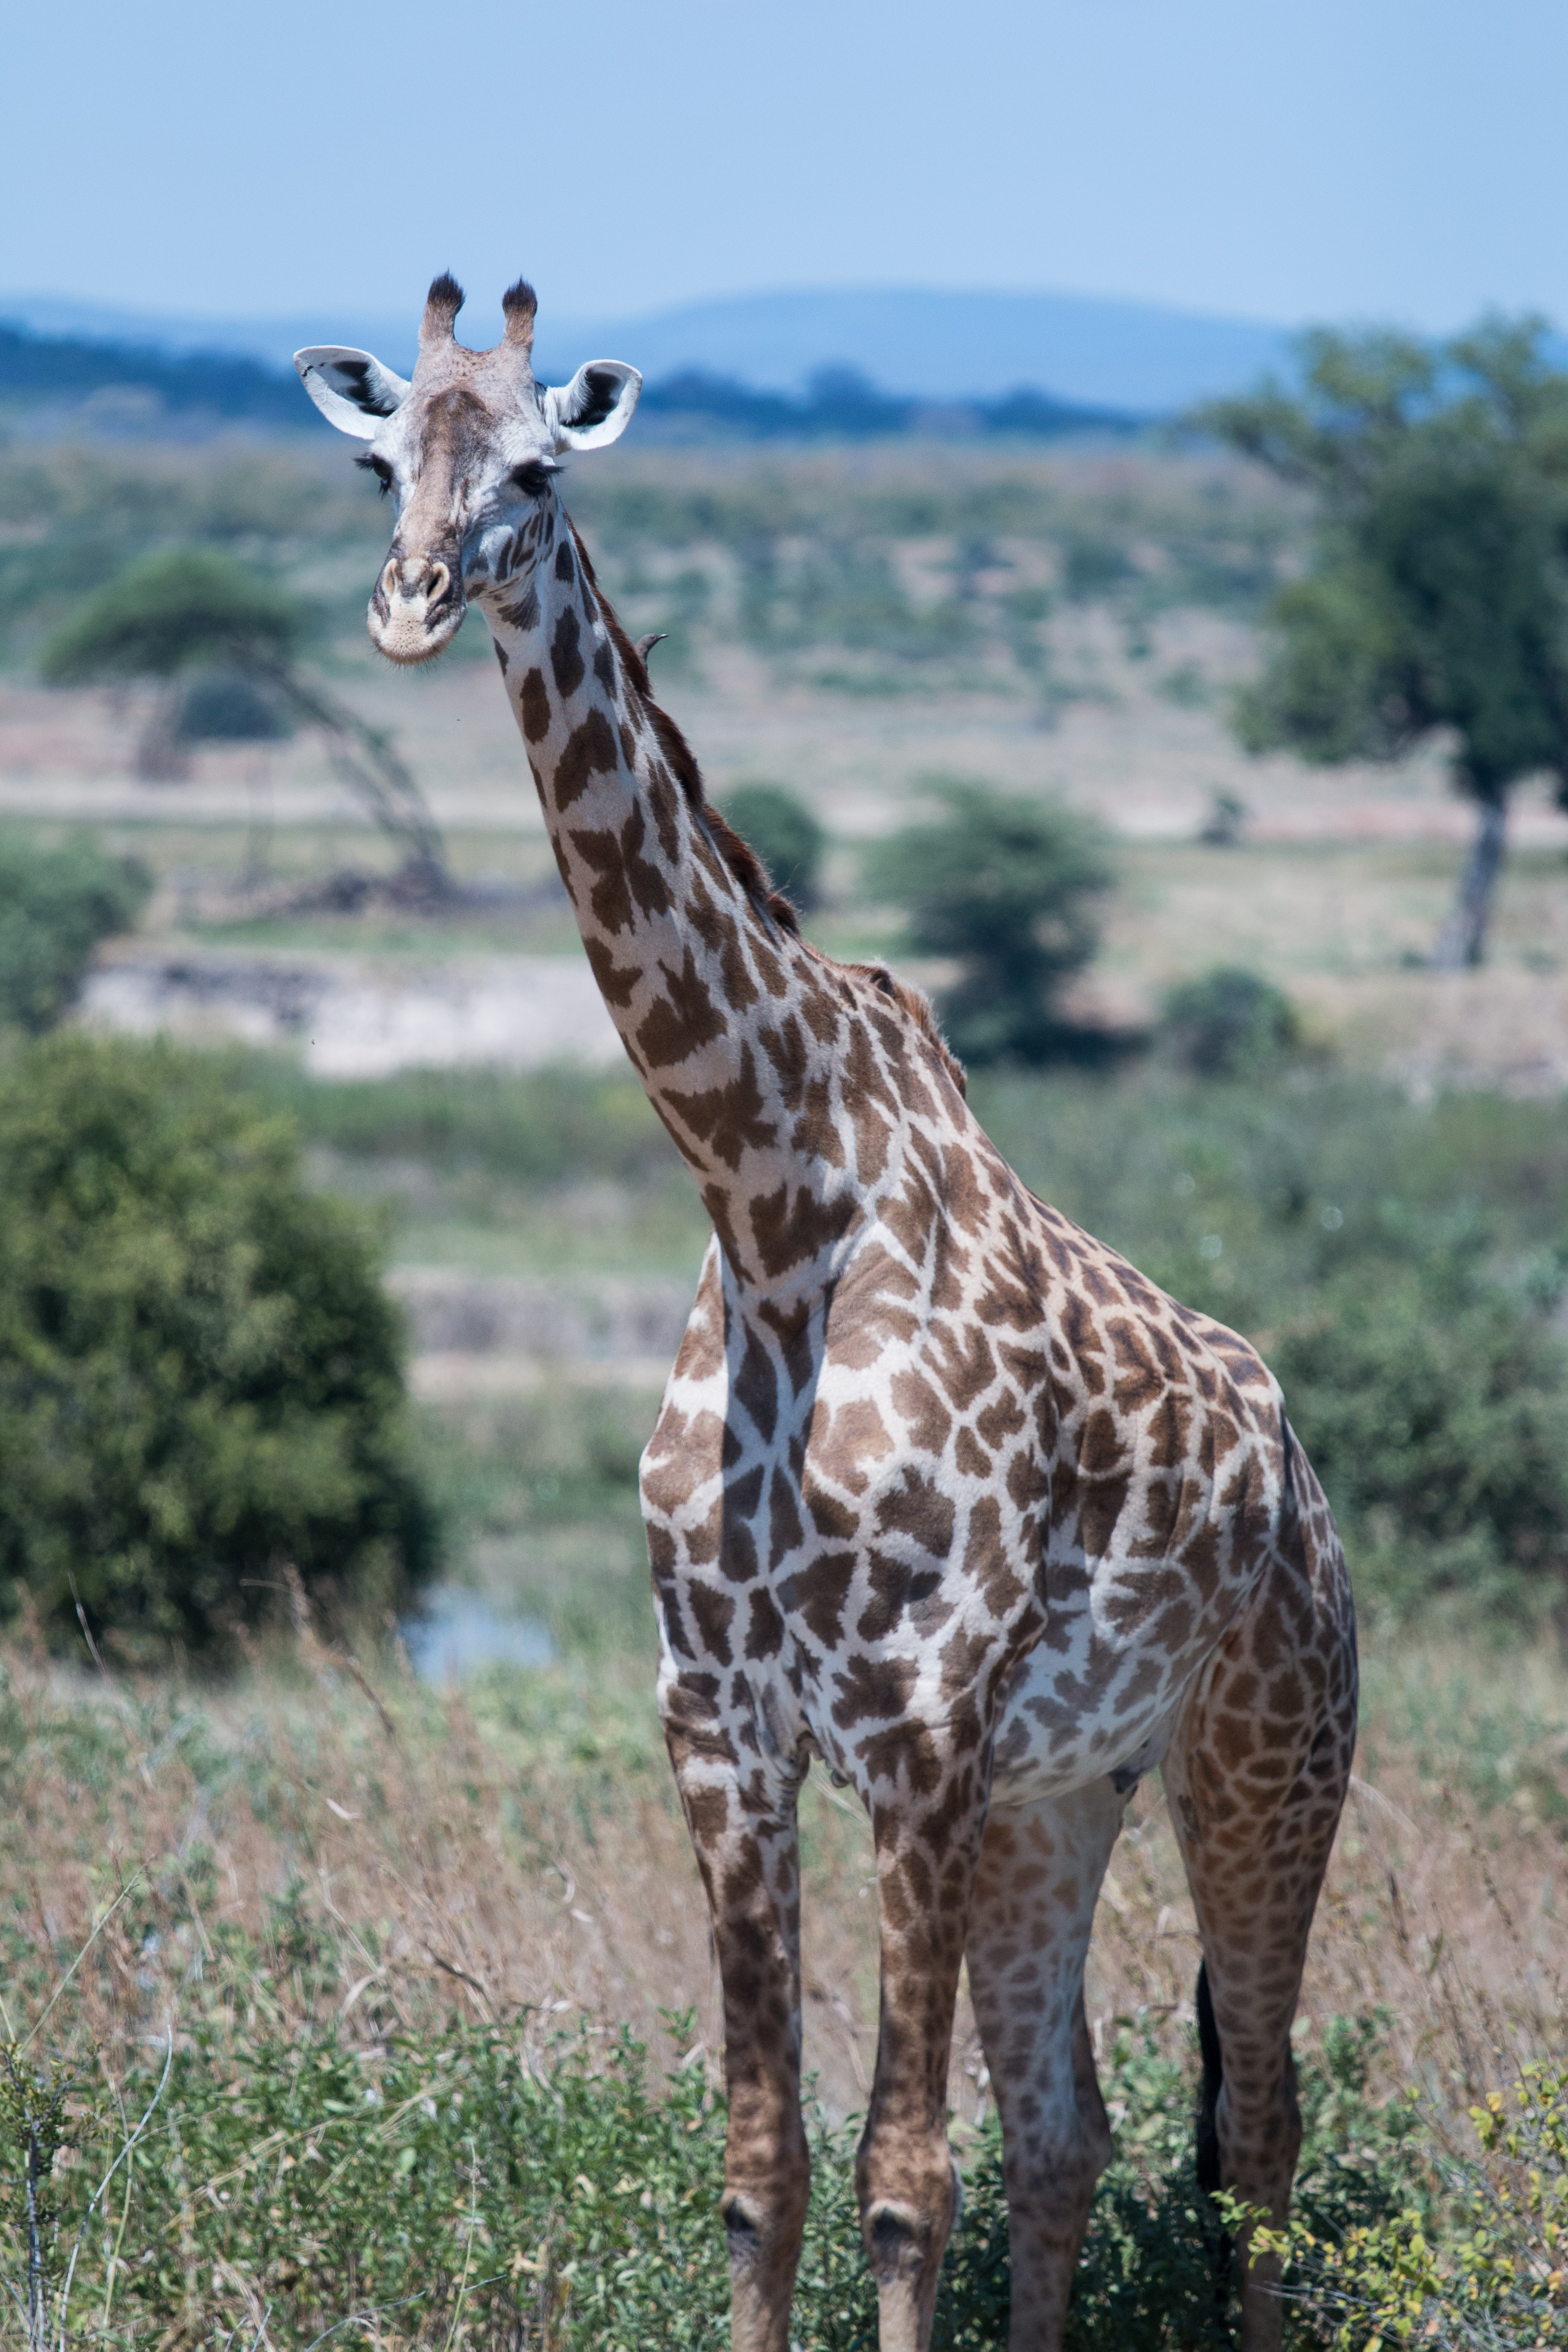 giraffe on field of grass